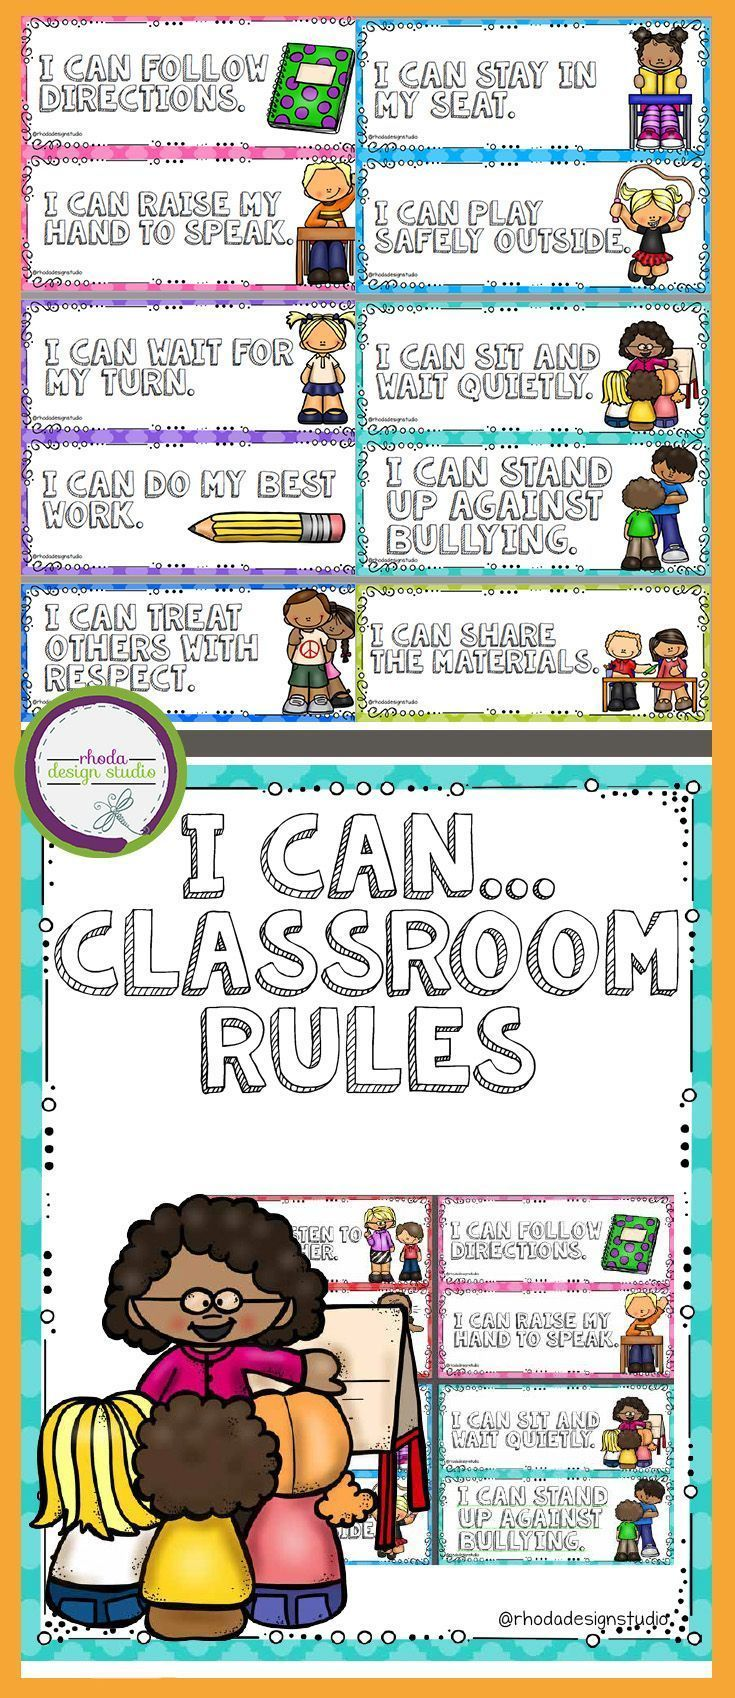 Example Method Statements I Can Classroom Rules Posters Set Positive Statements  Classroom .